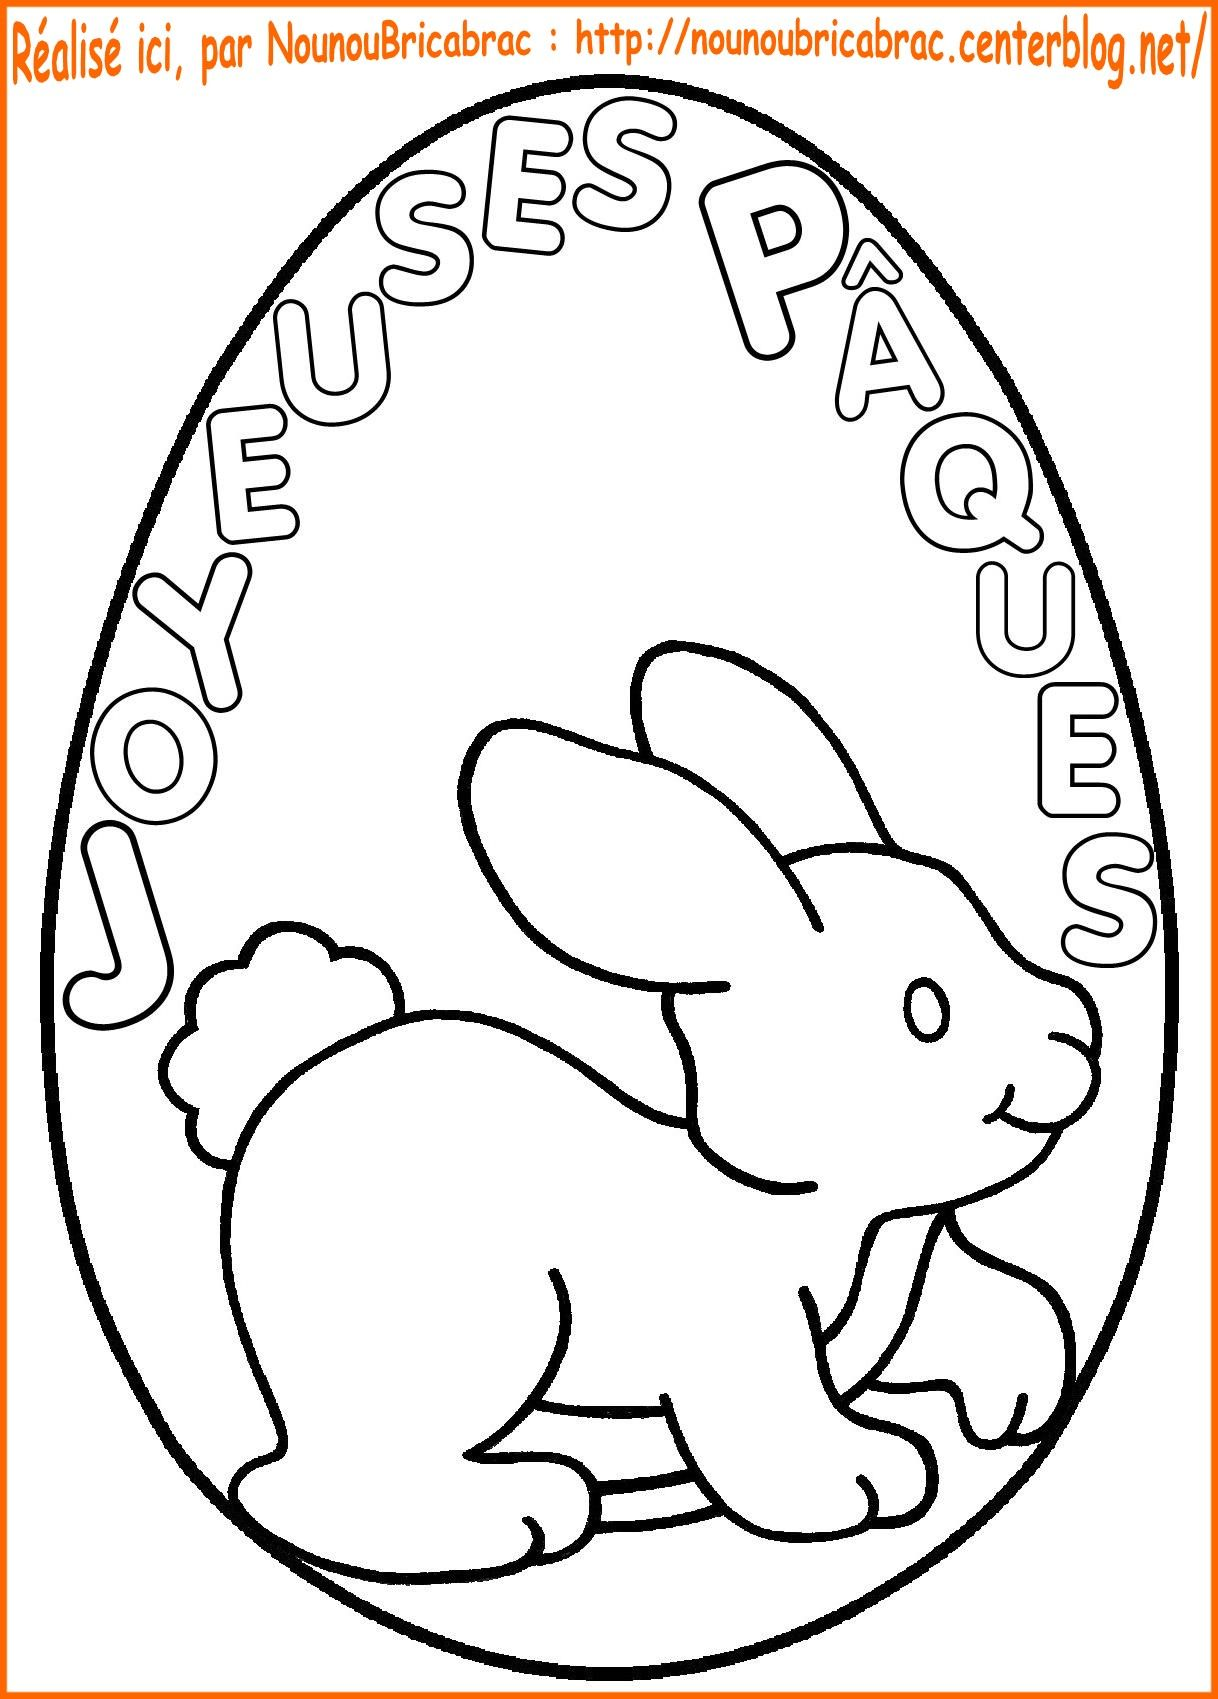 joyeuses pques colorier